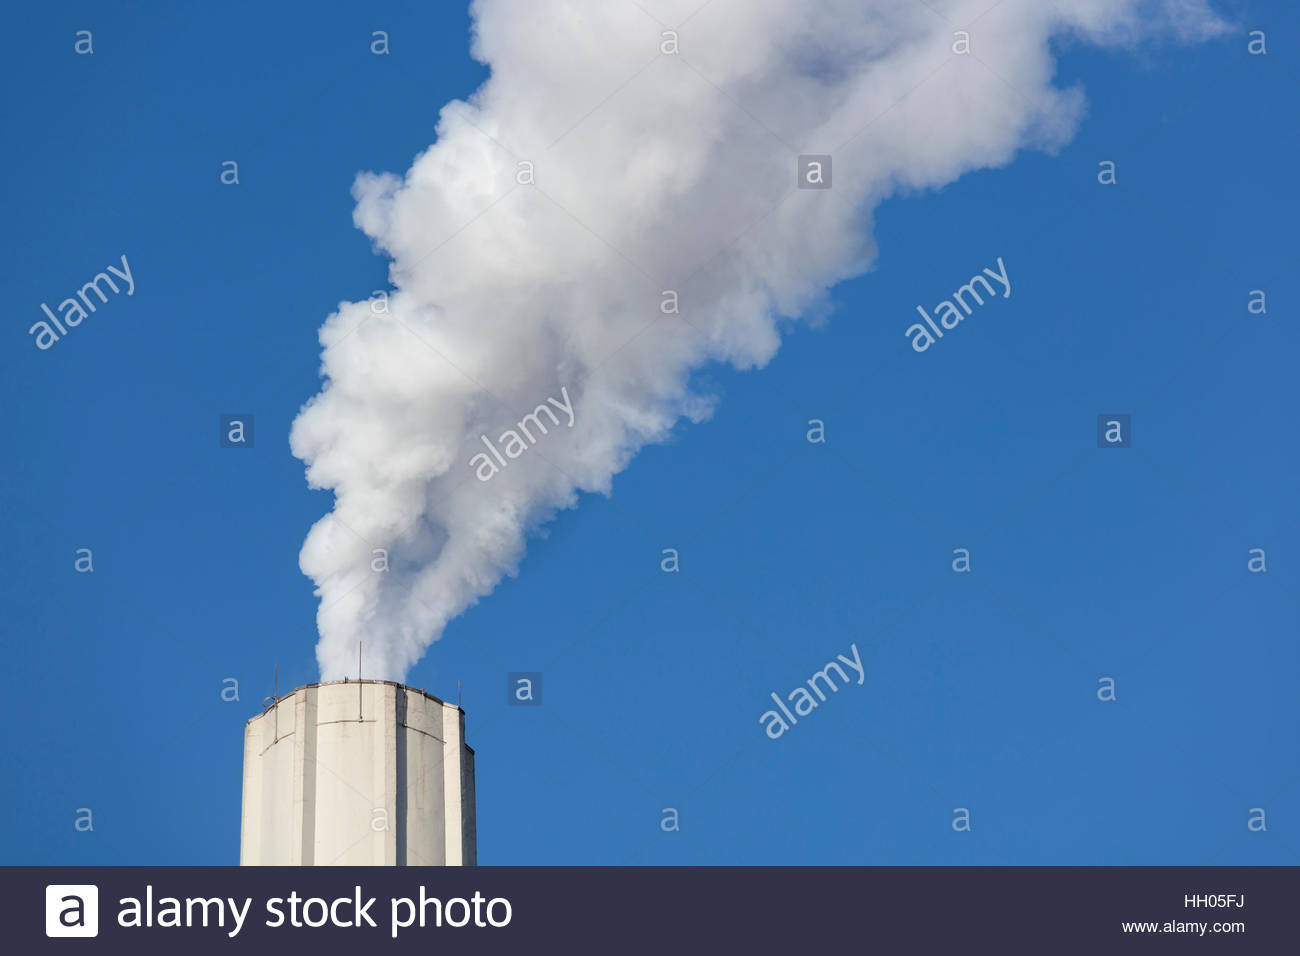 smoke chimney global warming climate change air pollution blue sky Ontario Canada. - Stock Image